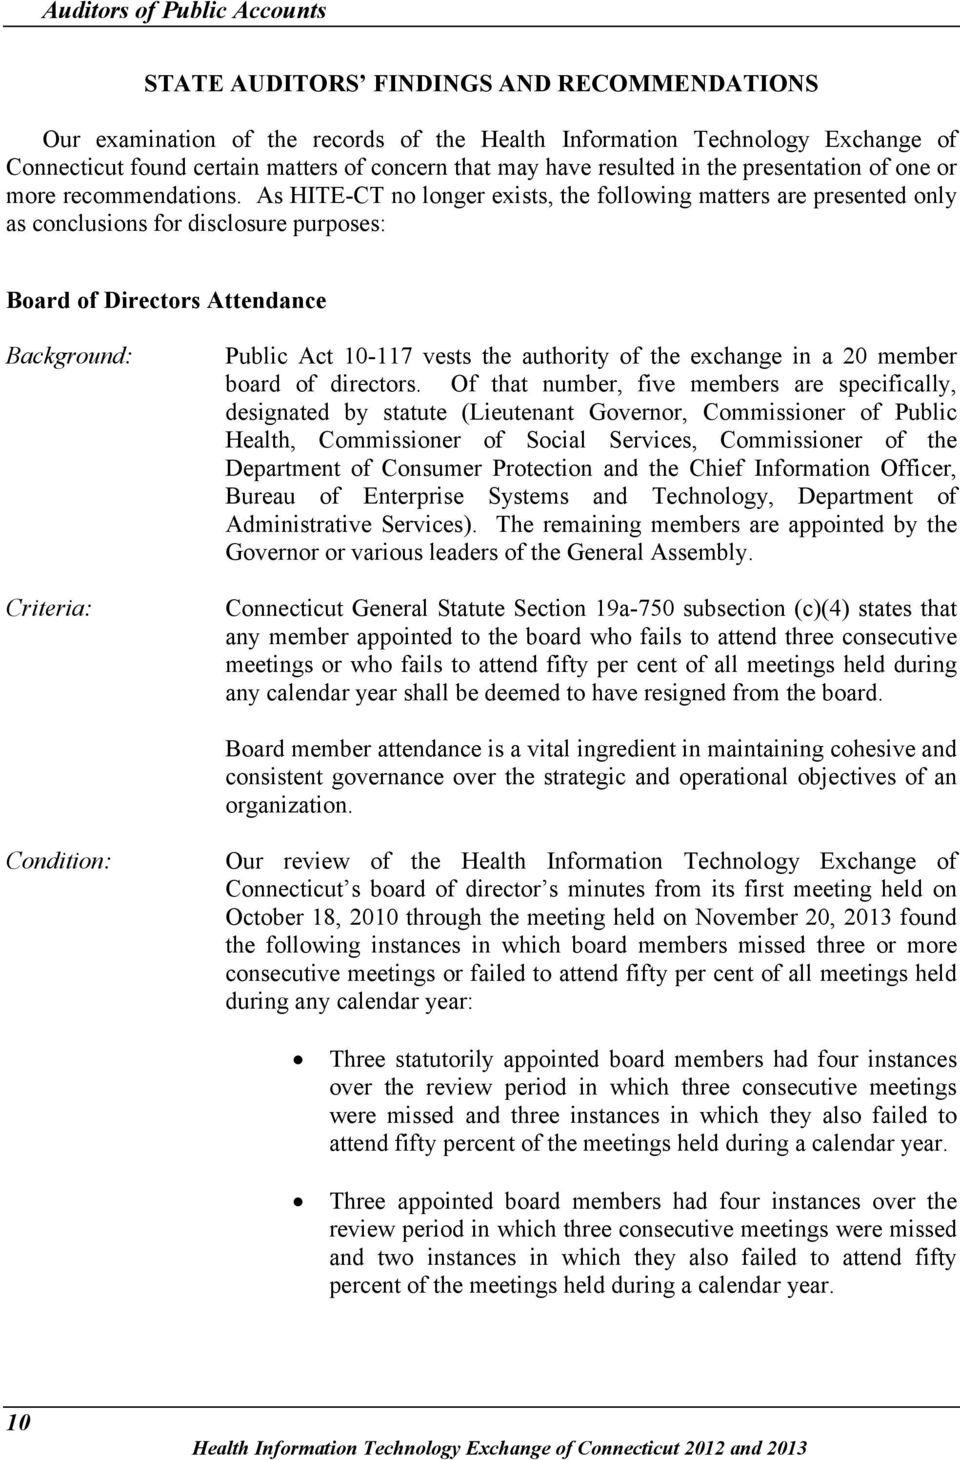 As HITE-CT no longer exists, the following matters are presented only as conclusions for disclosure purposes: Board of Directors Attendance Background: Criteria: Public Act 10-117 vests the authority